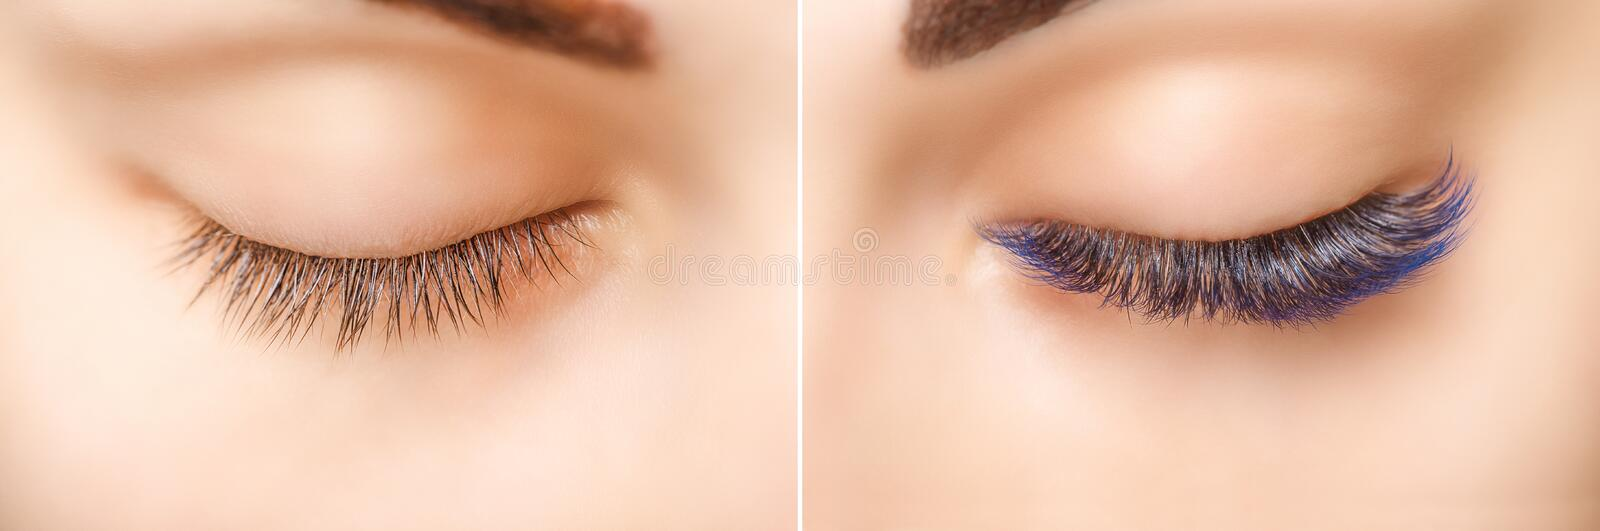 Eyelash Extension. Comparison of female eyes before and after. Blue ombre lashes. Comparison of female eyes before and after eyelash extension. Blue ombre stock photo